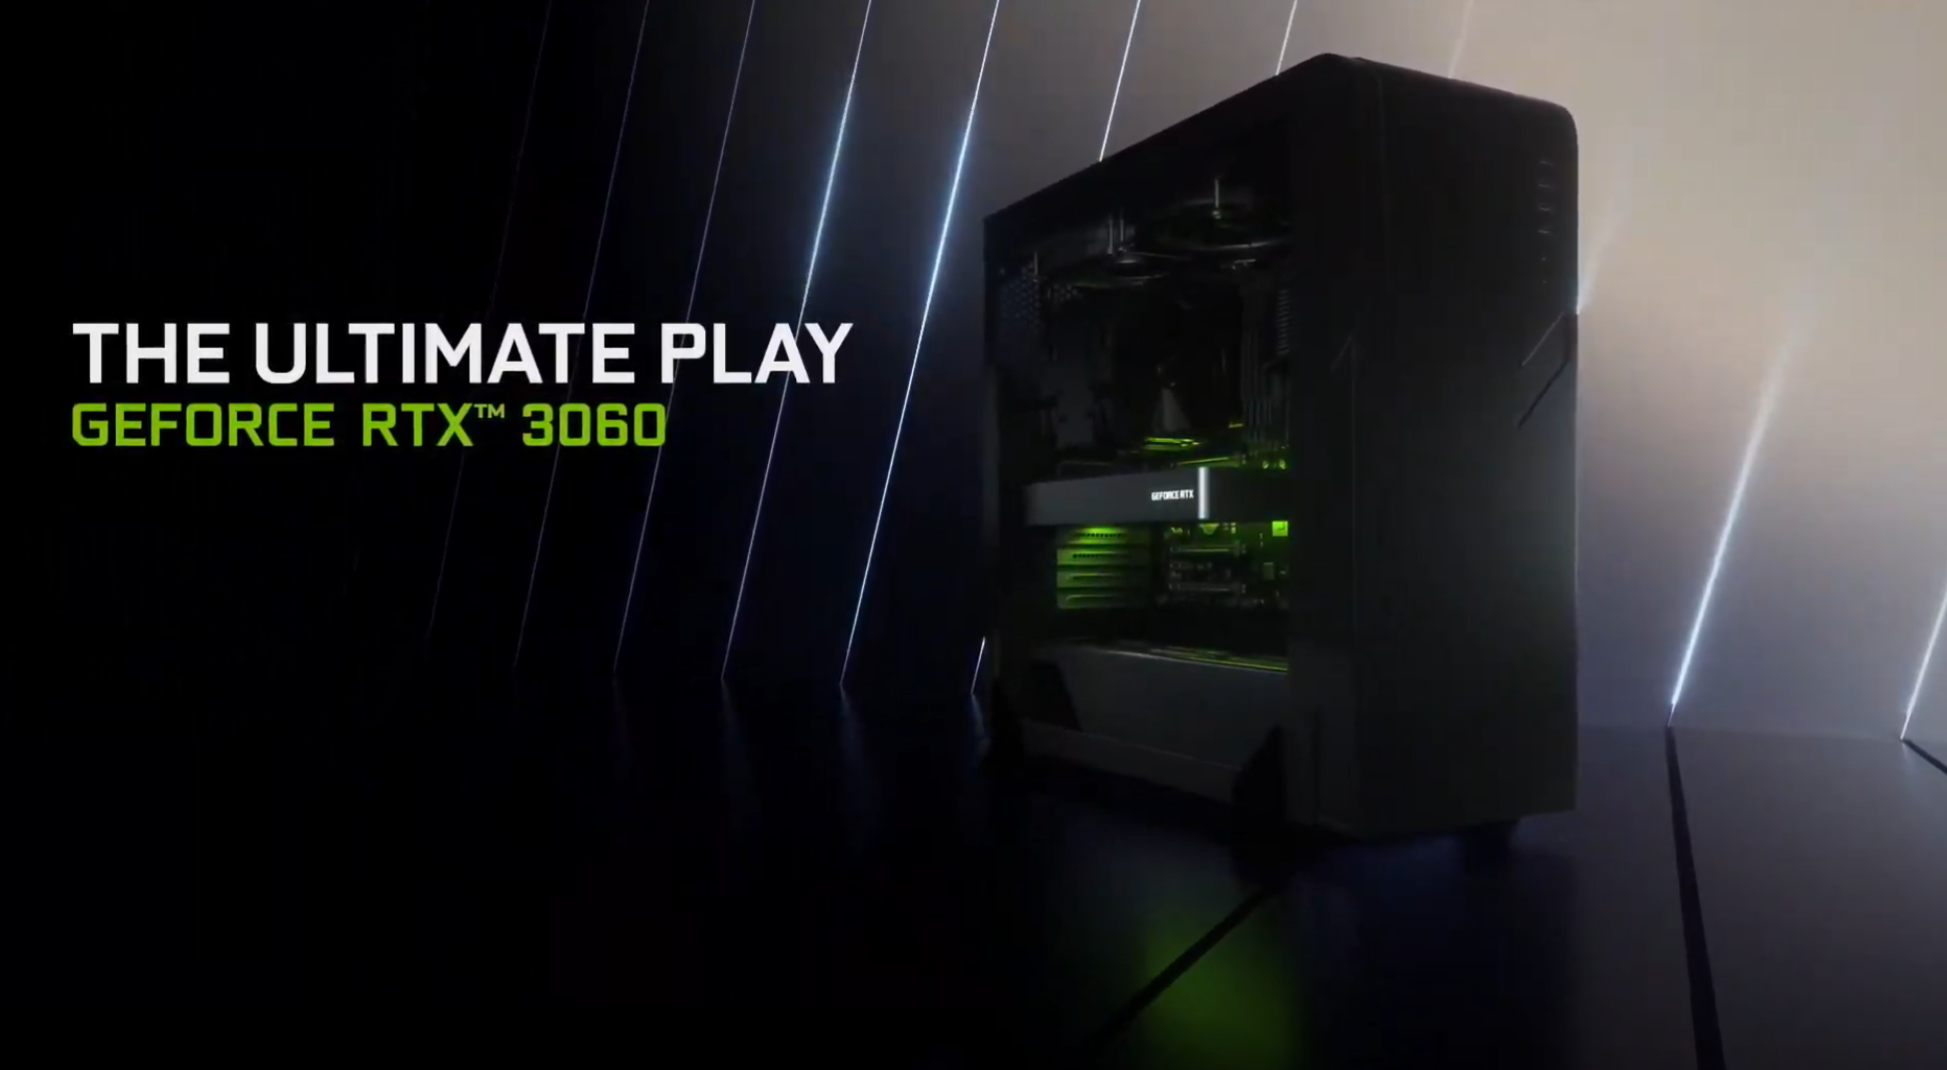 Nvidia RTX 3060 specs from CES 2021 special broadcast event